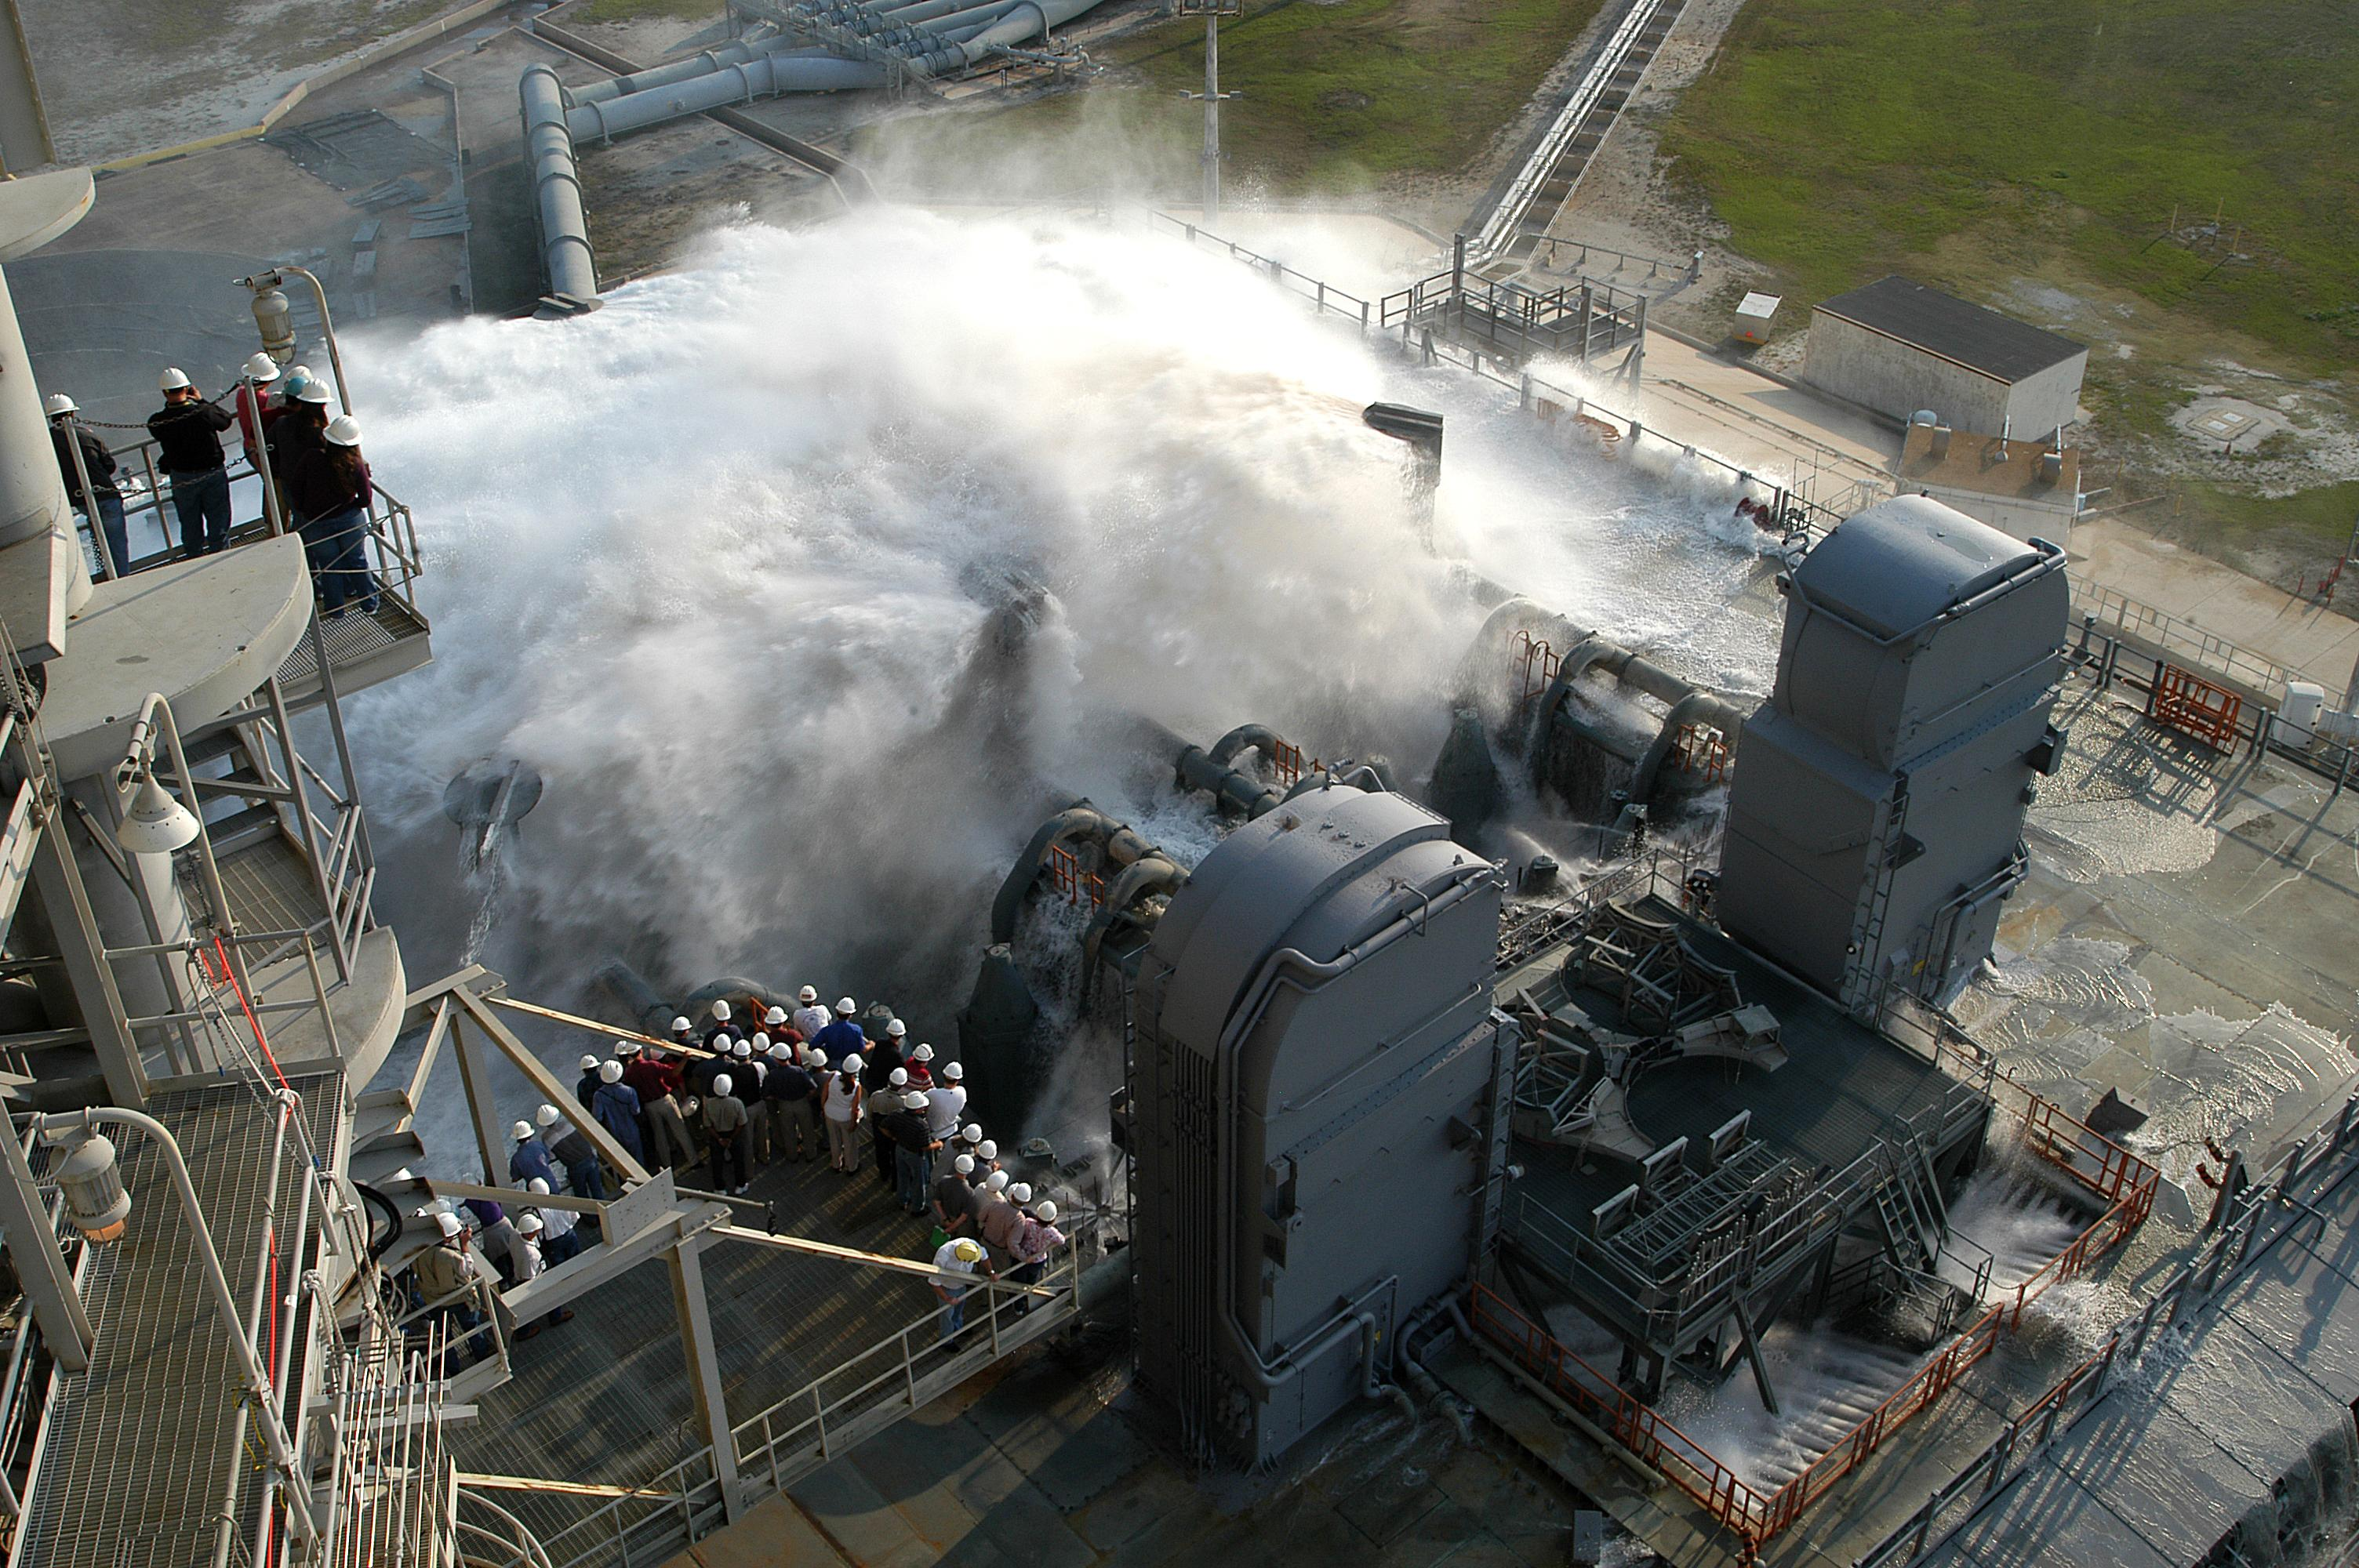 File:Sound suppression water system test at KSC Launch Pad 39A jpg